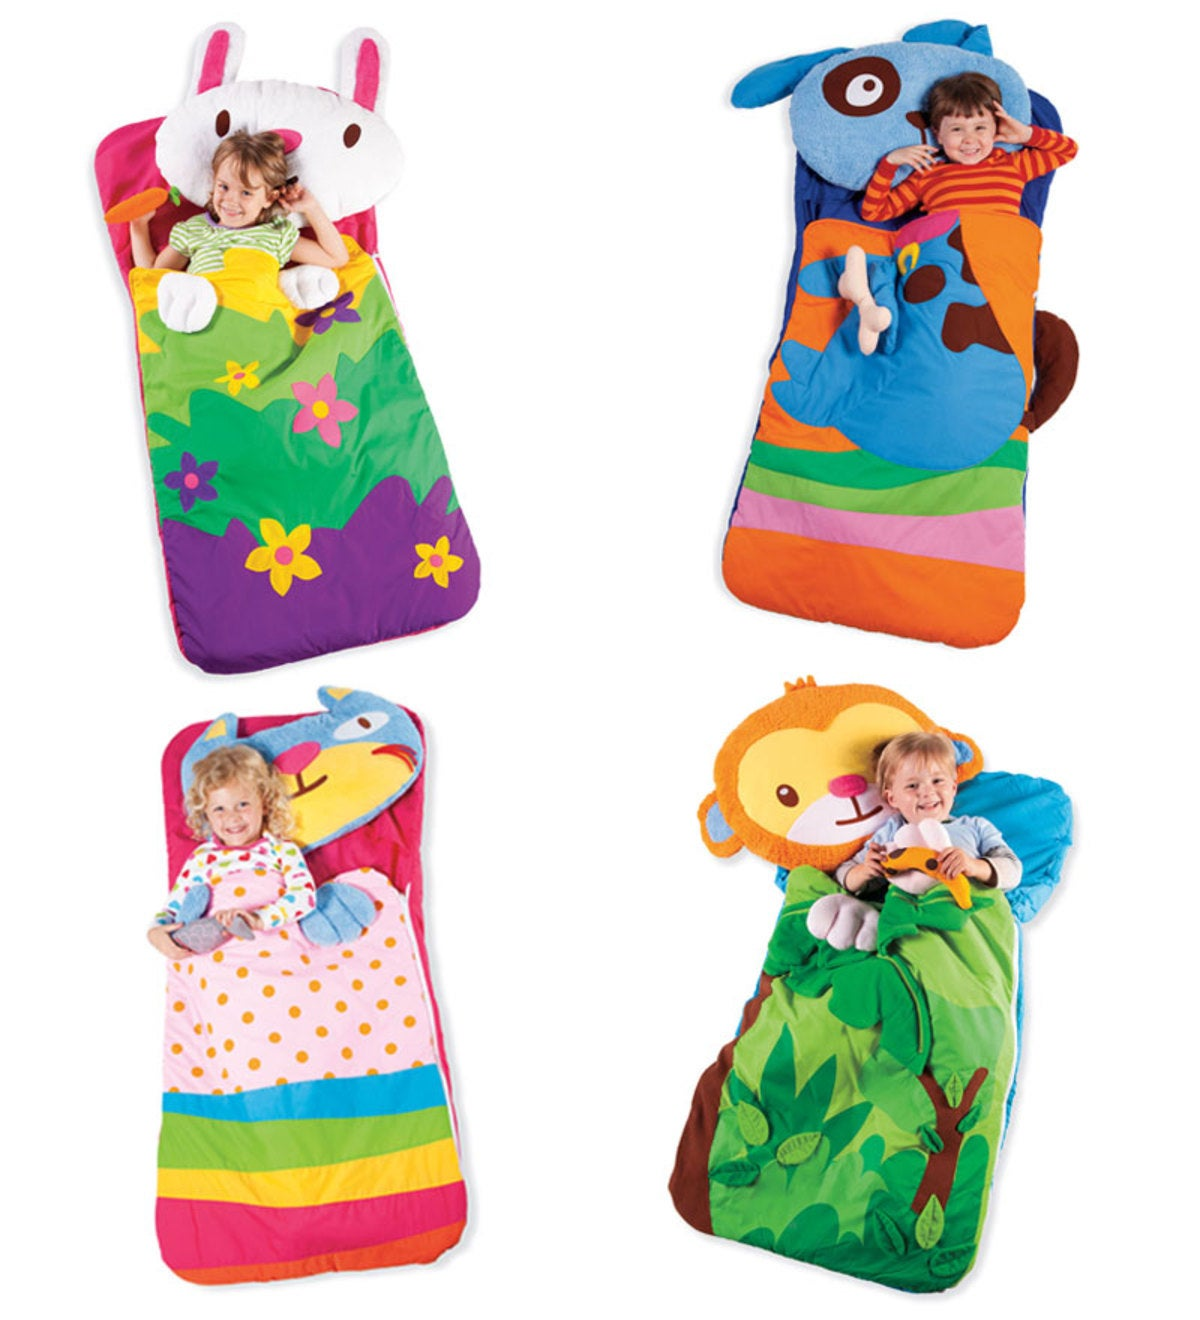 Sillies Sleeping Bag with Plush Pillow